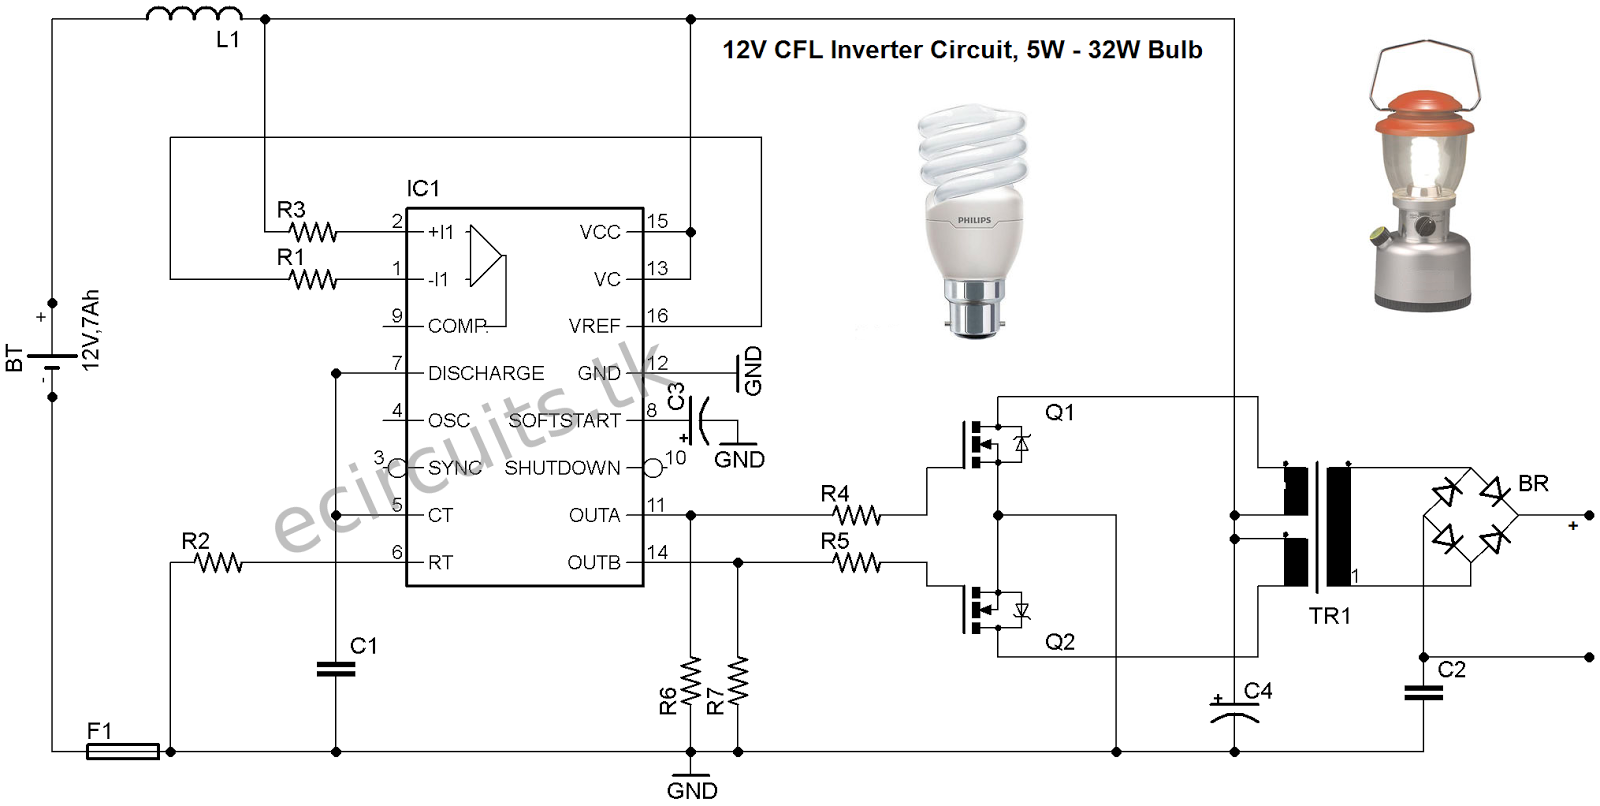 12v cfl emergency light circuit using 3525 ic mini inverter rh simplecircuitsprojects blogspot com 12v 230v inverter circuit diagram 12v 1000w inverter circuit diagram